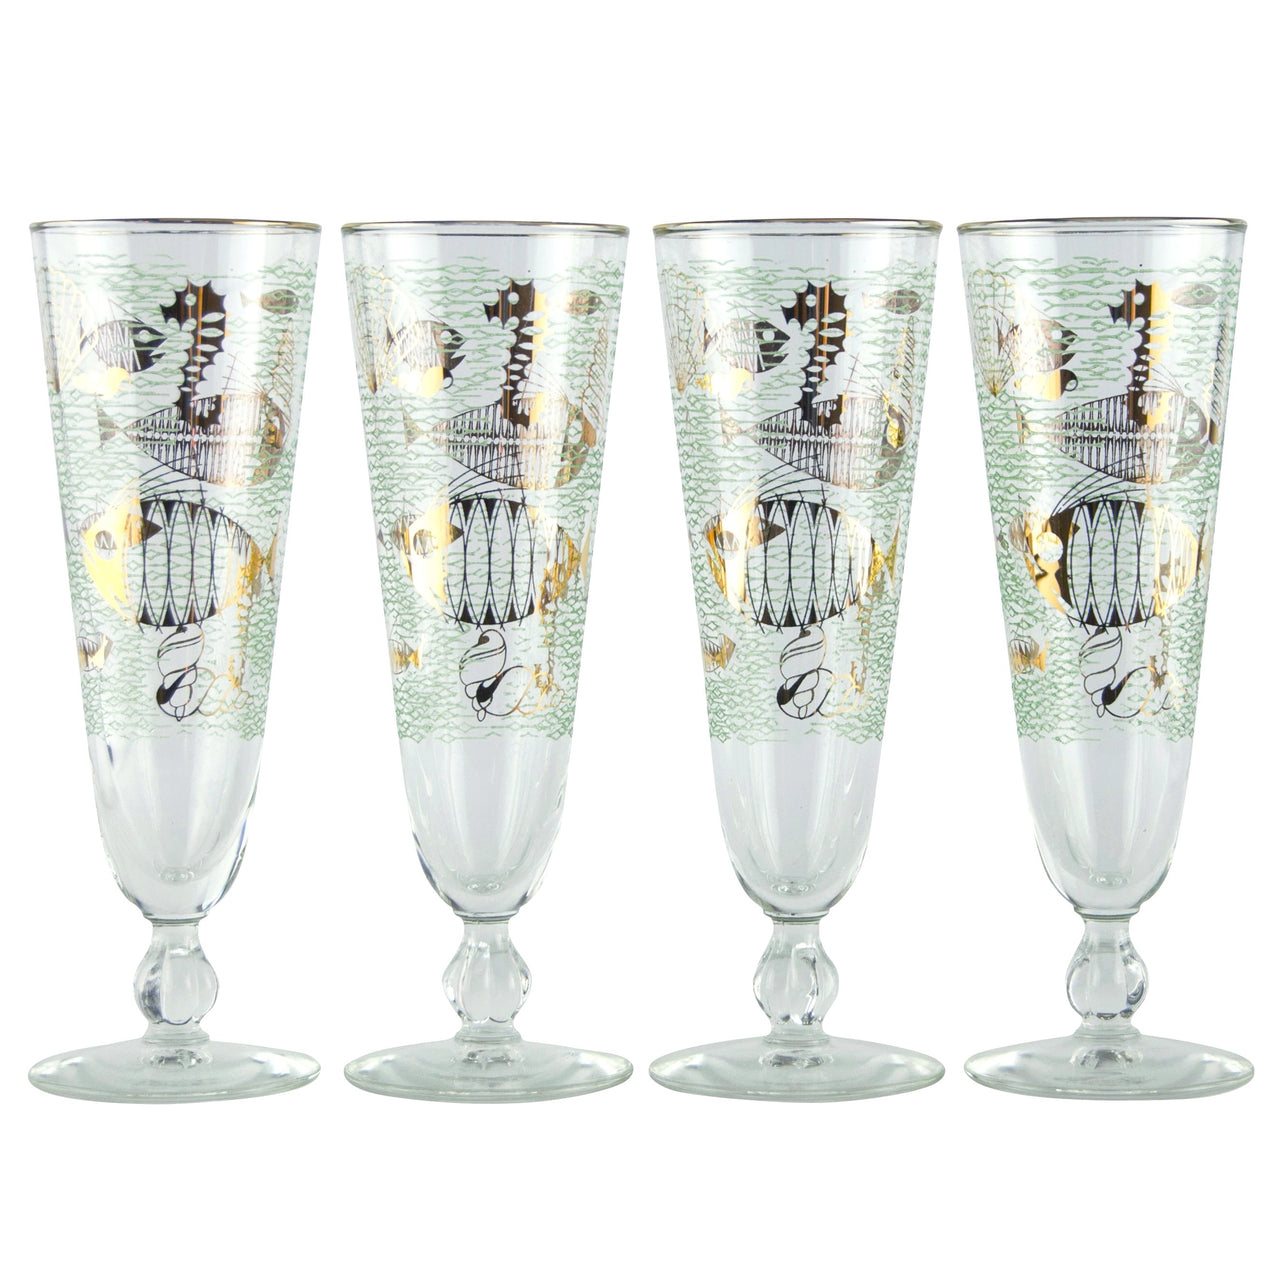 Libby Under The Sea Pilsner Glasses | The Hour Shop Vintage